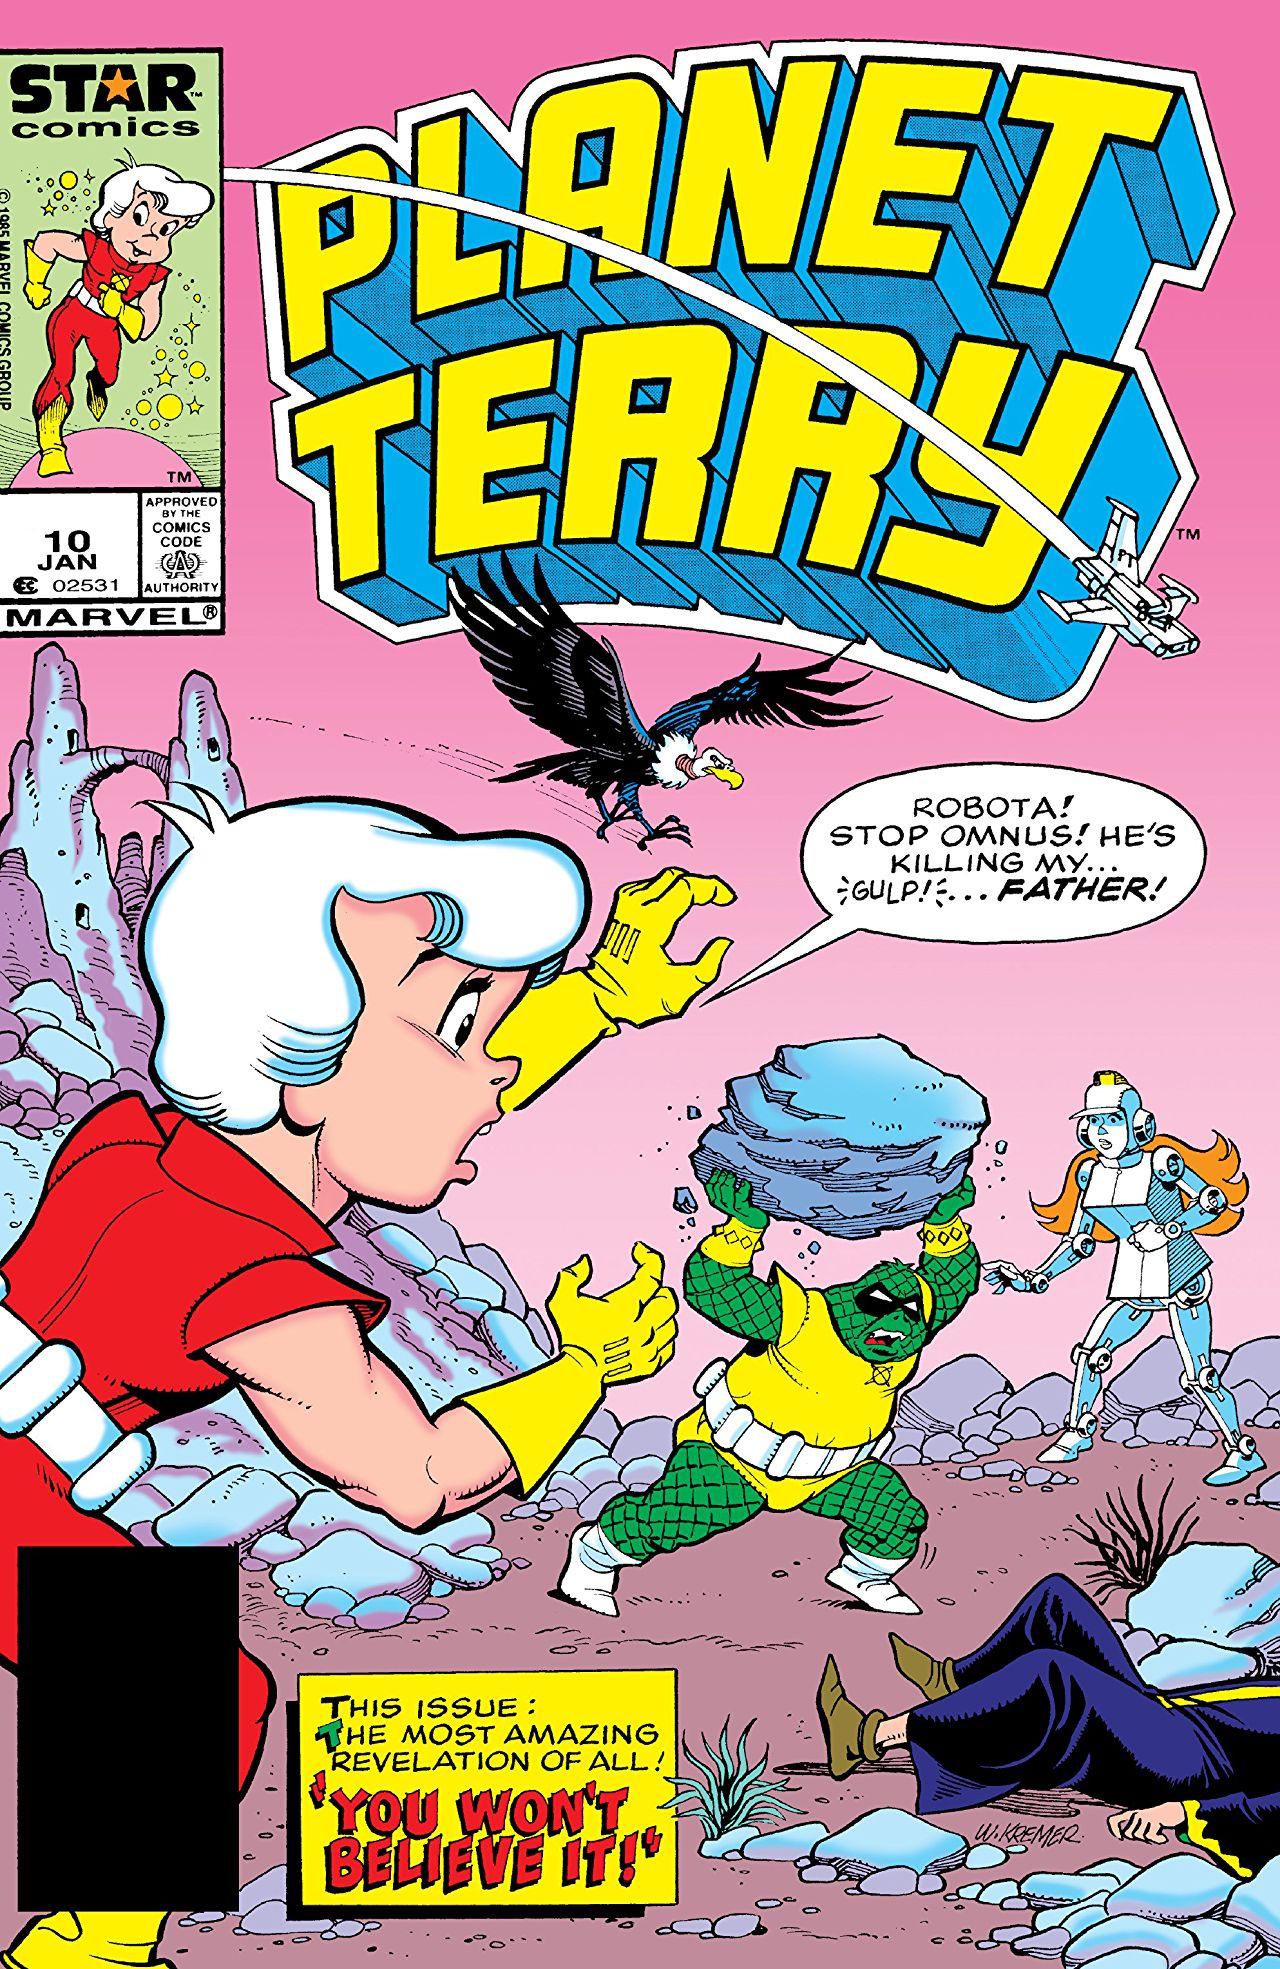 Planet Terry Vol 1 10